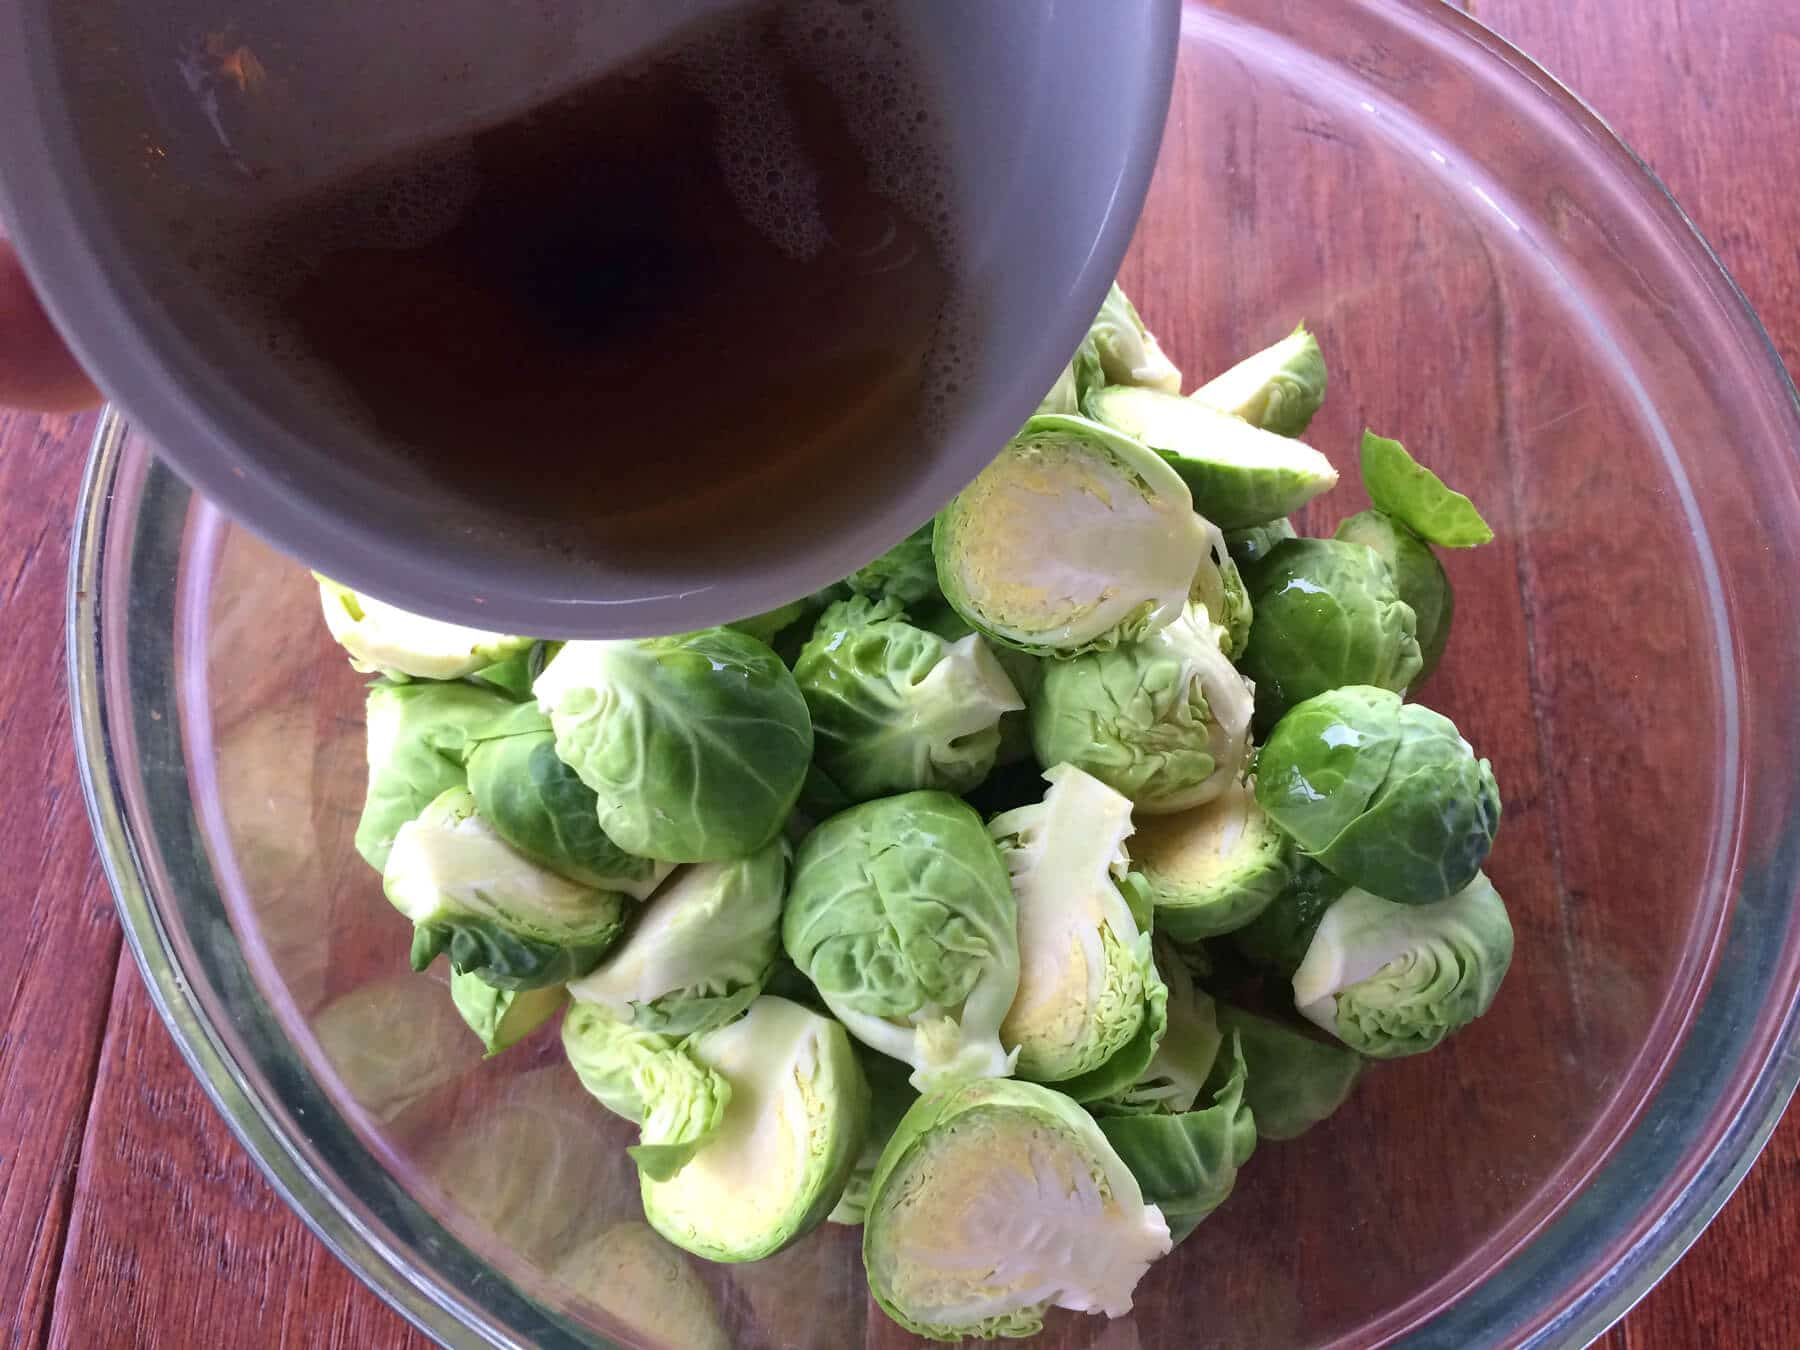 roasted-brussels-sprouts-prep-4